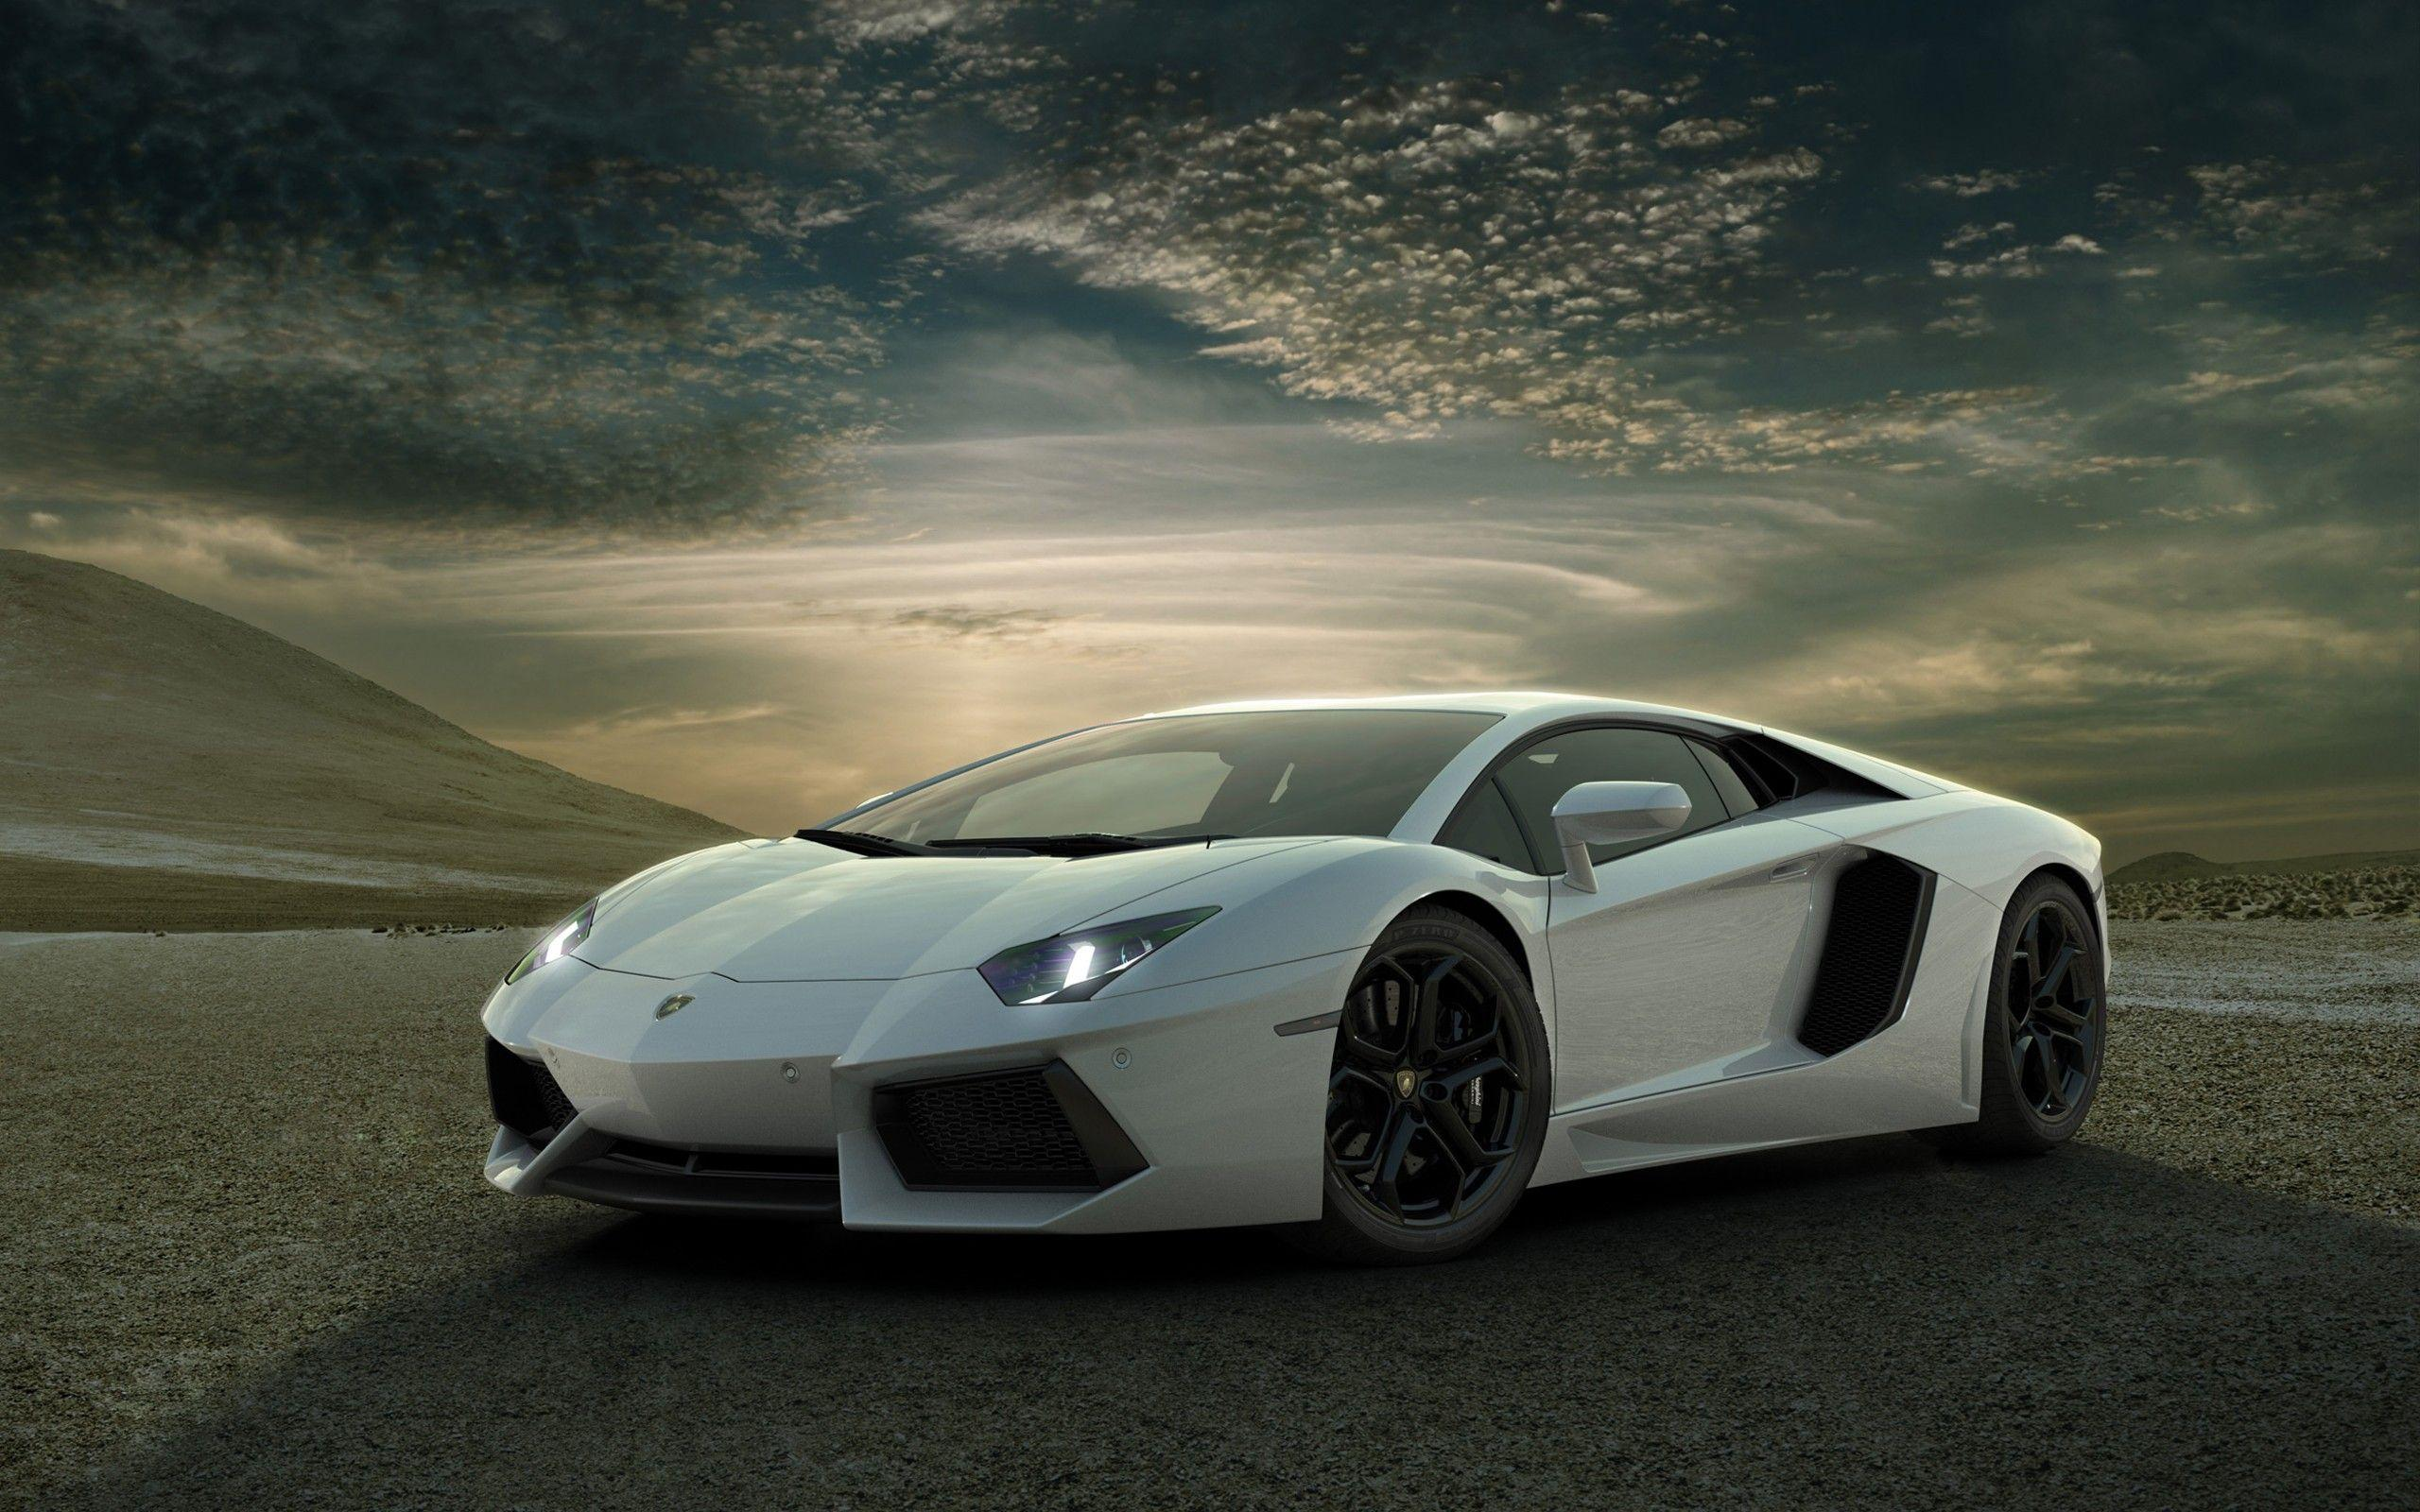 lamborghini reventon image wallpaper - photo #8